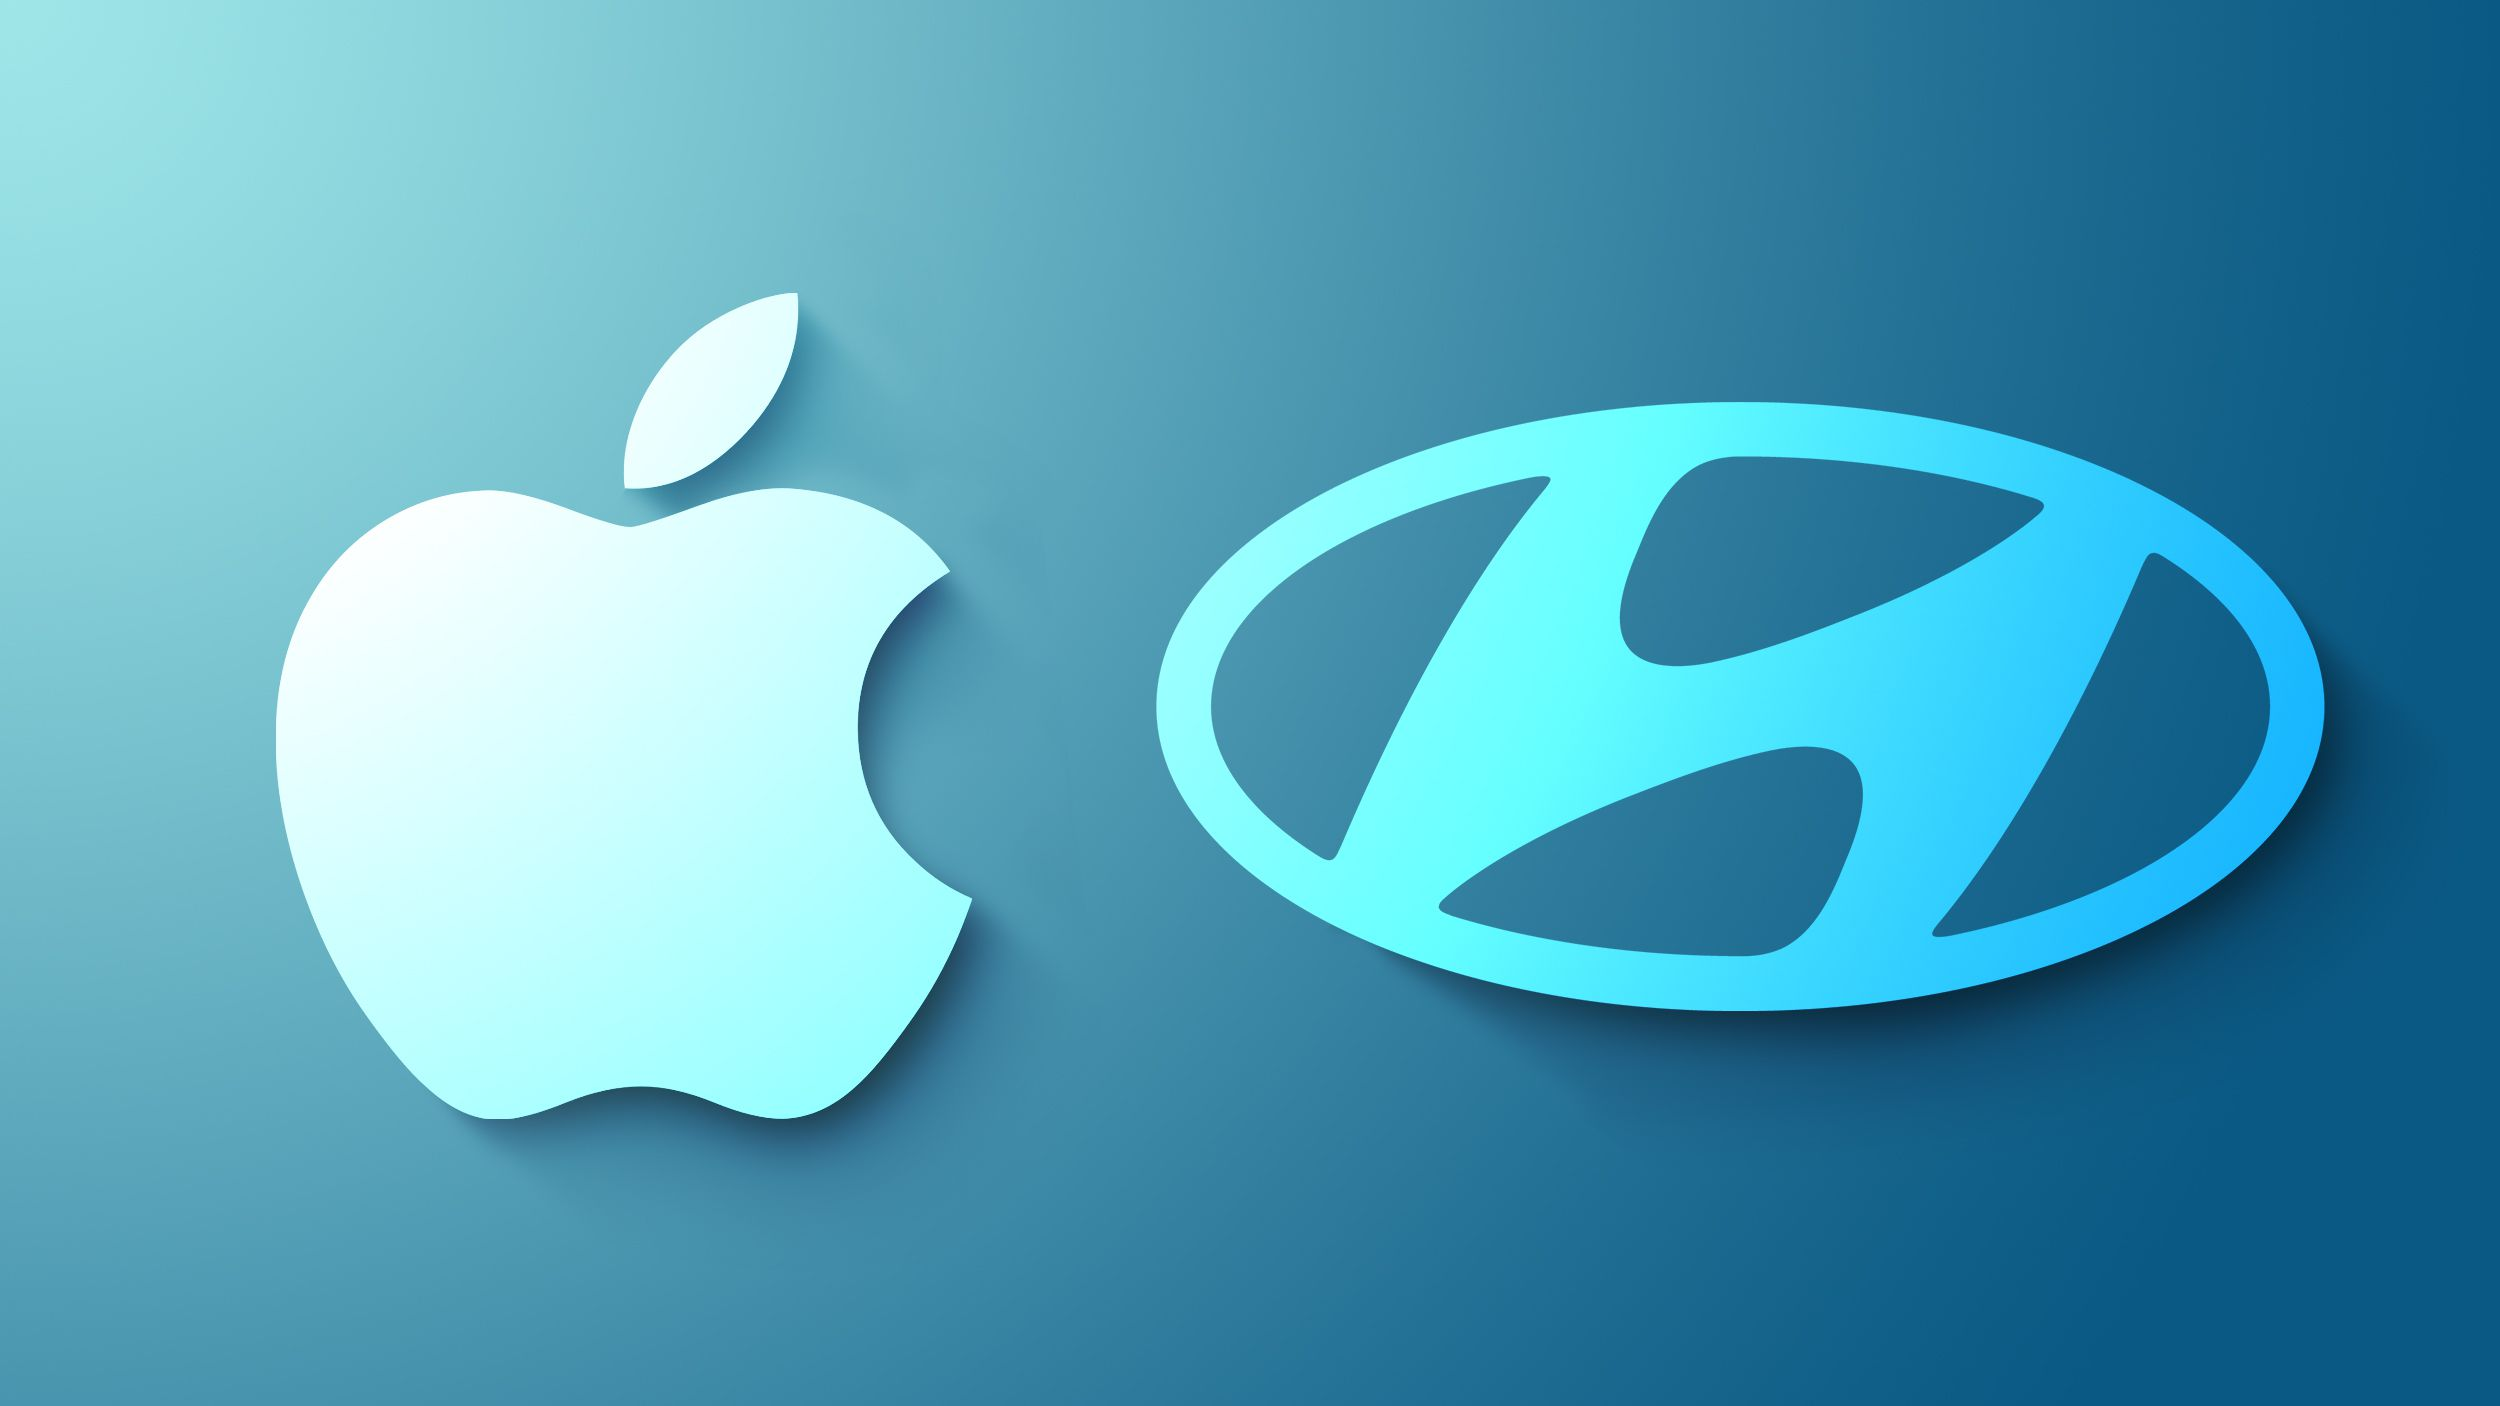 Apple and Hyundai feature 1